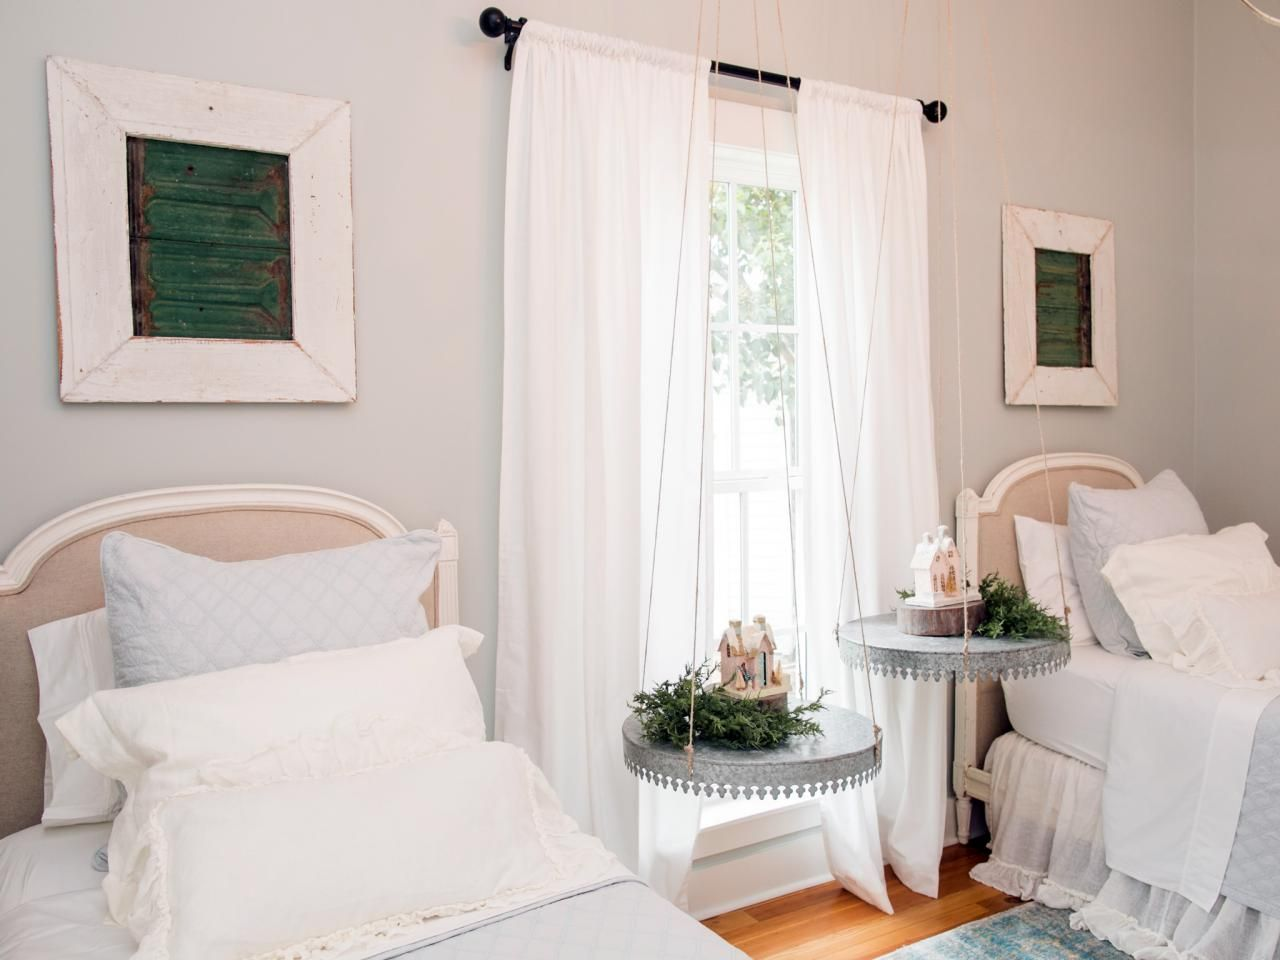 Find The Best Of Fixer Upper From Hgtv Hanging Night Tables House Beds Joanna Gaines Dining Room Fixer Upper